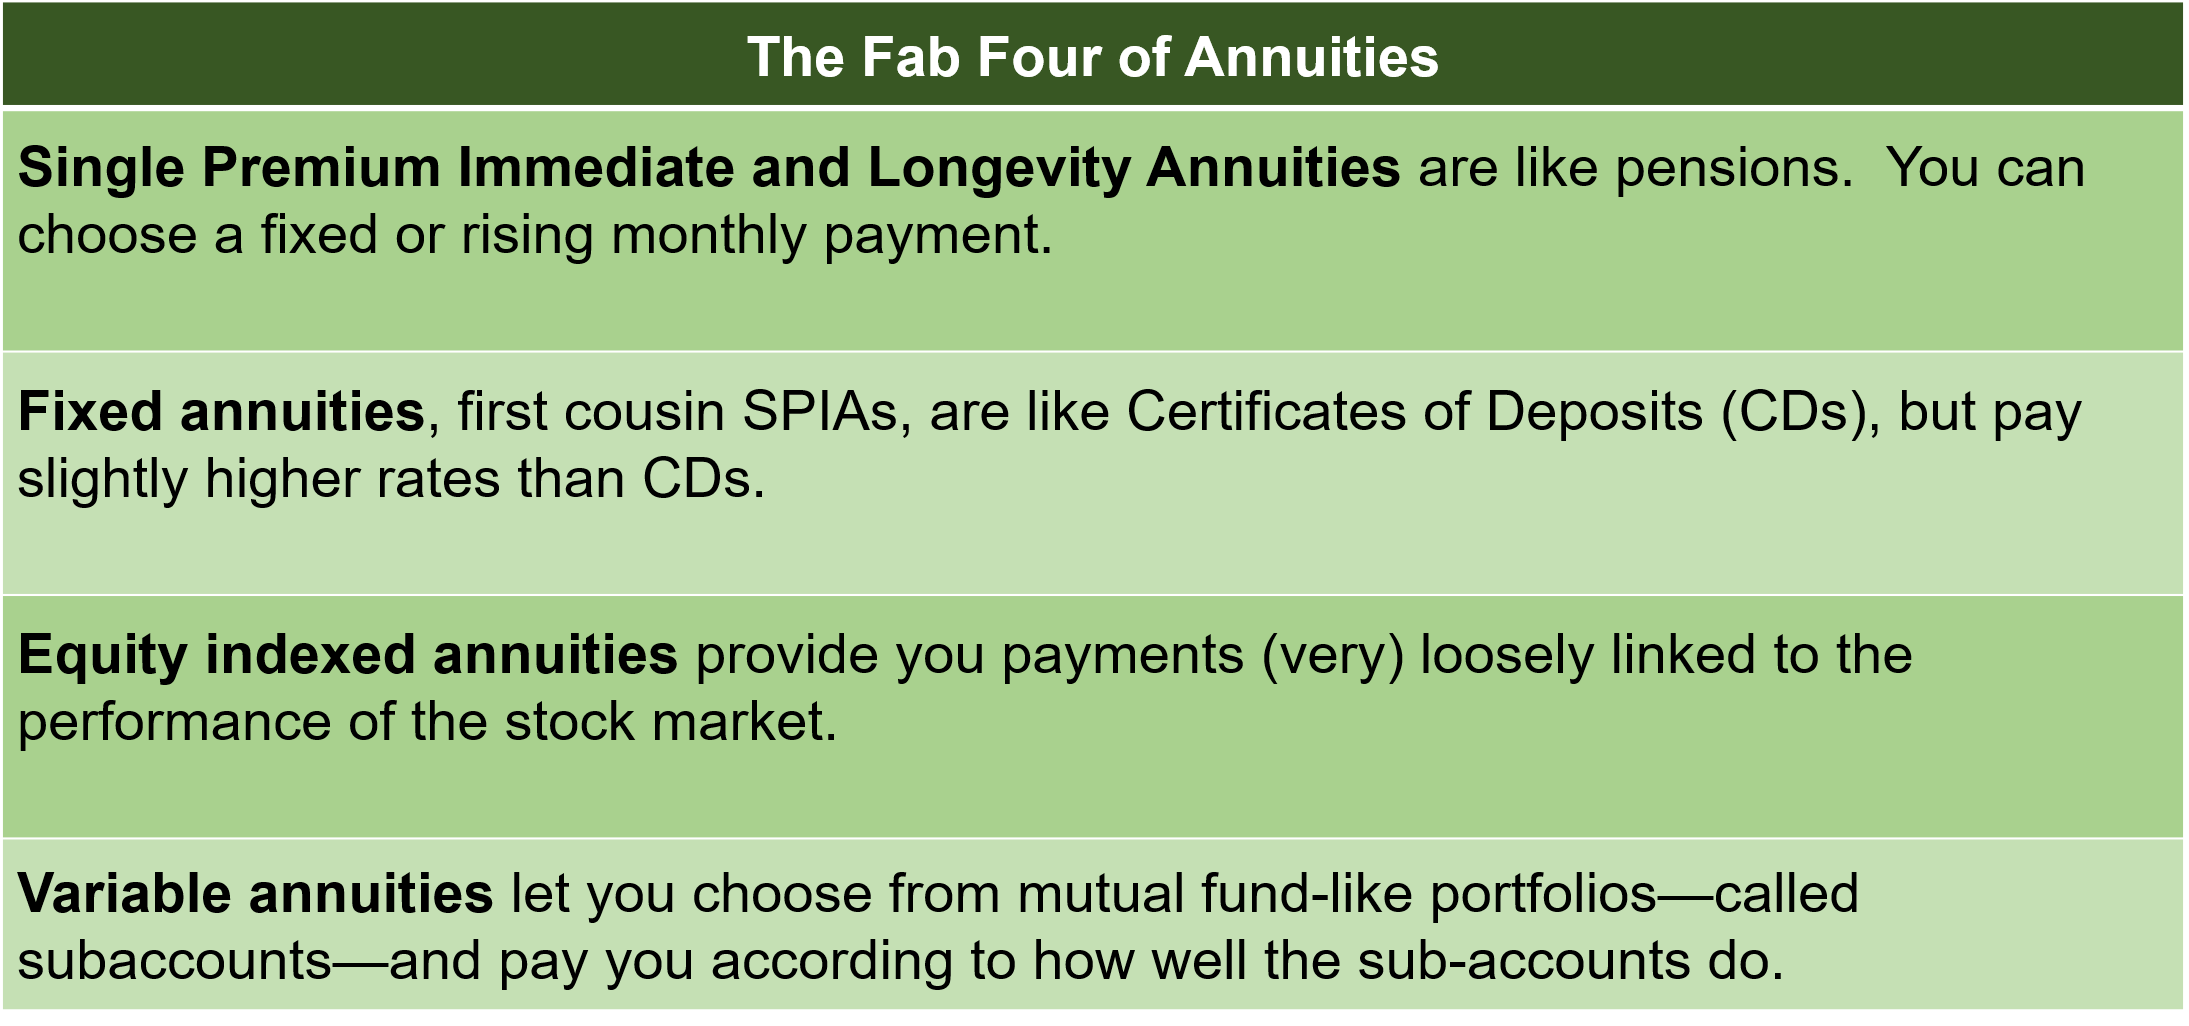 Table describing the Fab Four of annuities: Single premium immediate and longevity annuities, Fixed annuities, Equity indexed annuities, and Variable annuities.